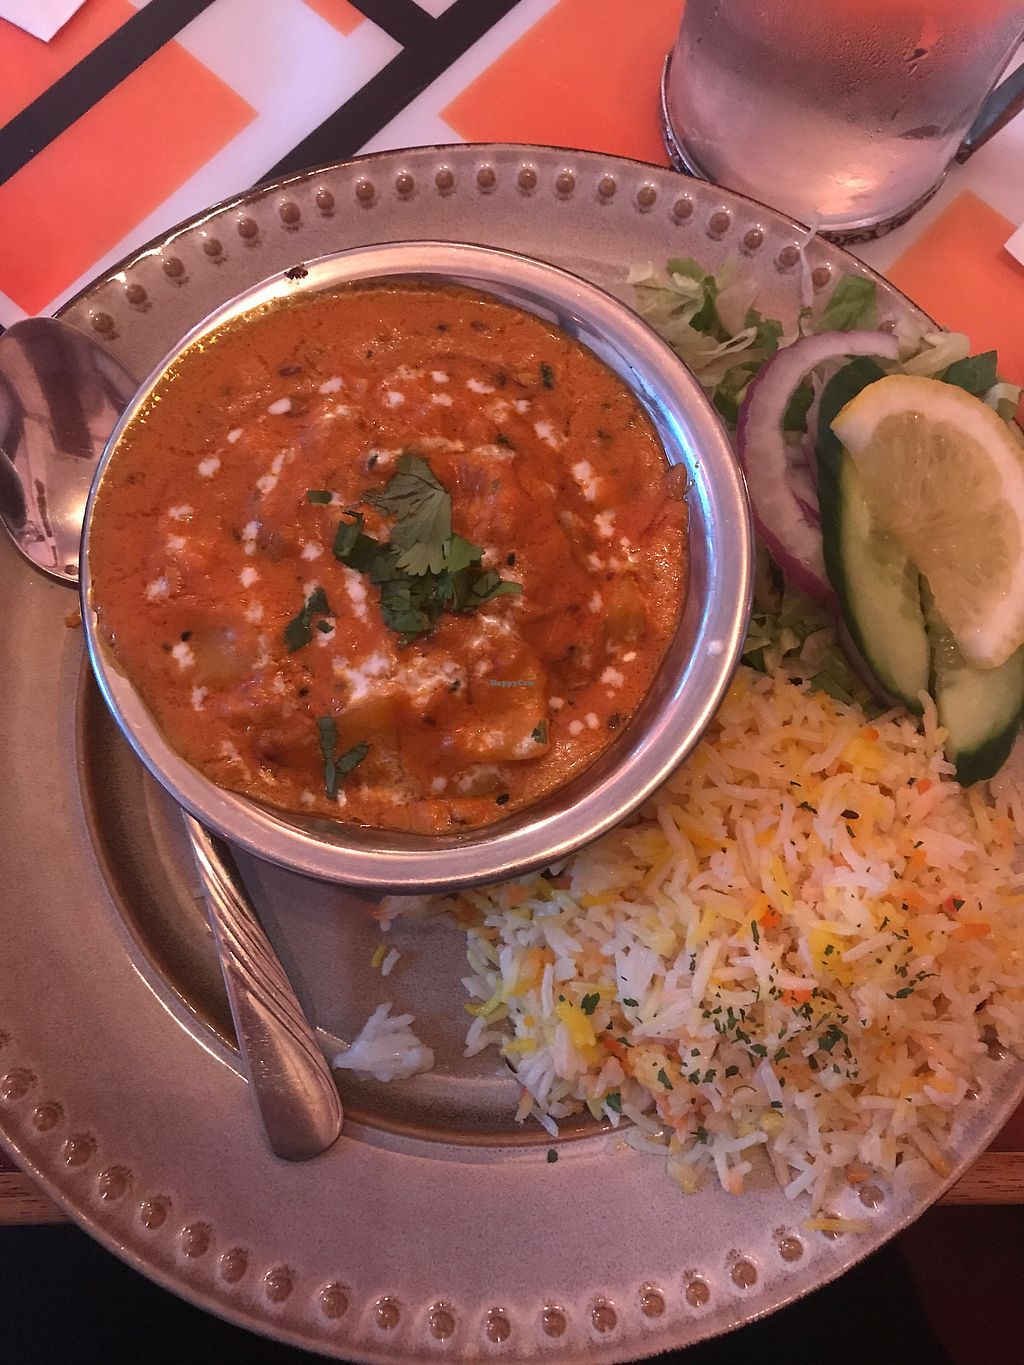 """Photo of Shalimar  by <a href=""""/members/profile/SophiaHoffmann"""">SophiaHoffmann</a> <br/>vegetarian dish - potato curry with cashew <br/> August 20, 2017  - <a href='/contact/abuse/image/82149/294908'>Report</a>"""